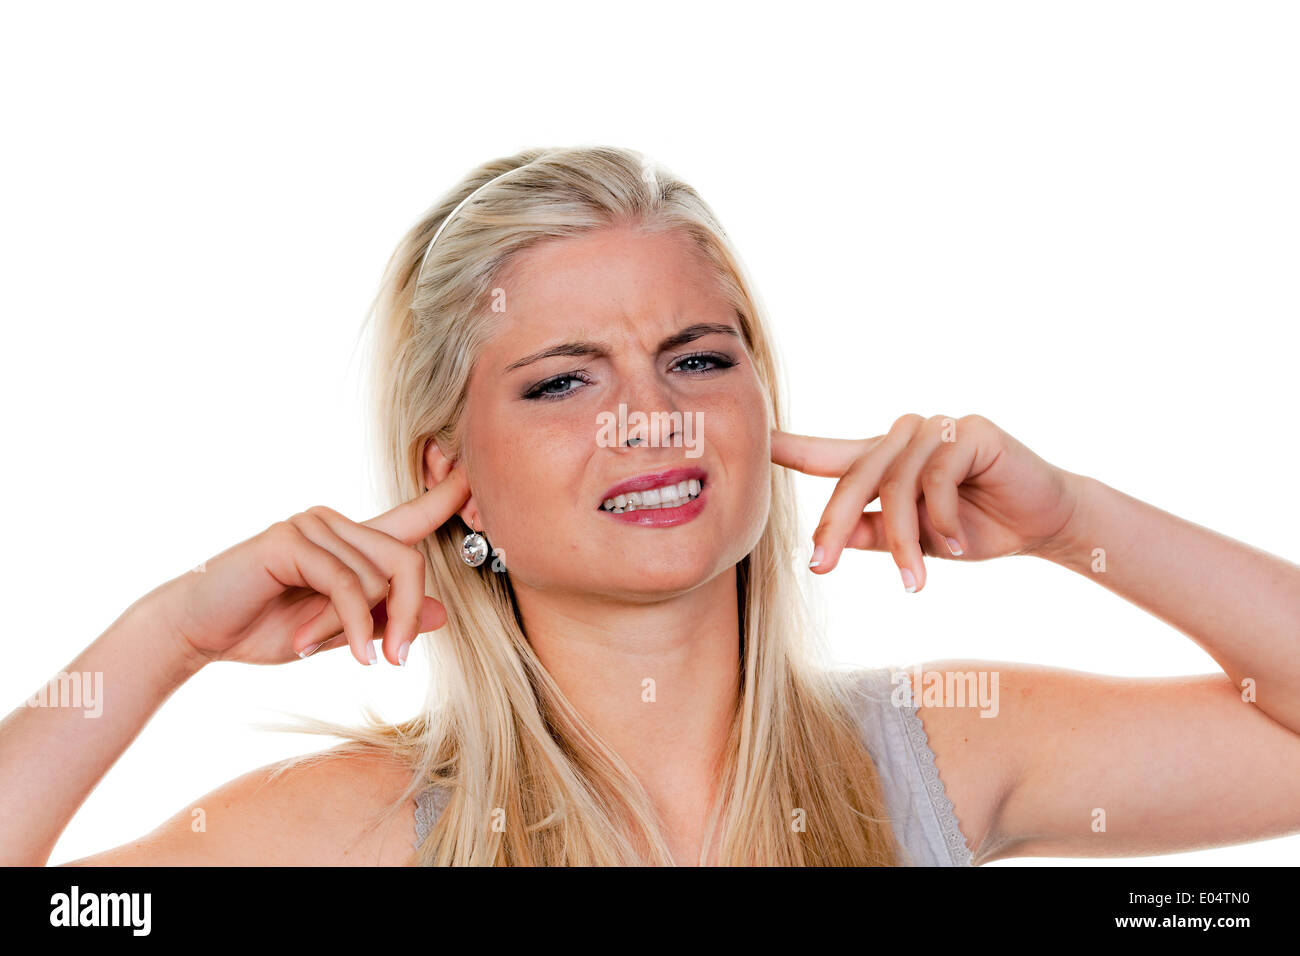 Young woman suffers from noise pollution, keeps closed to herself the ears., Junge Frau leidet unter Laermbelaestigung, haelt si - Stock Image